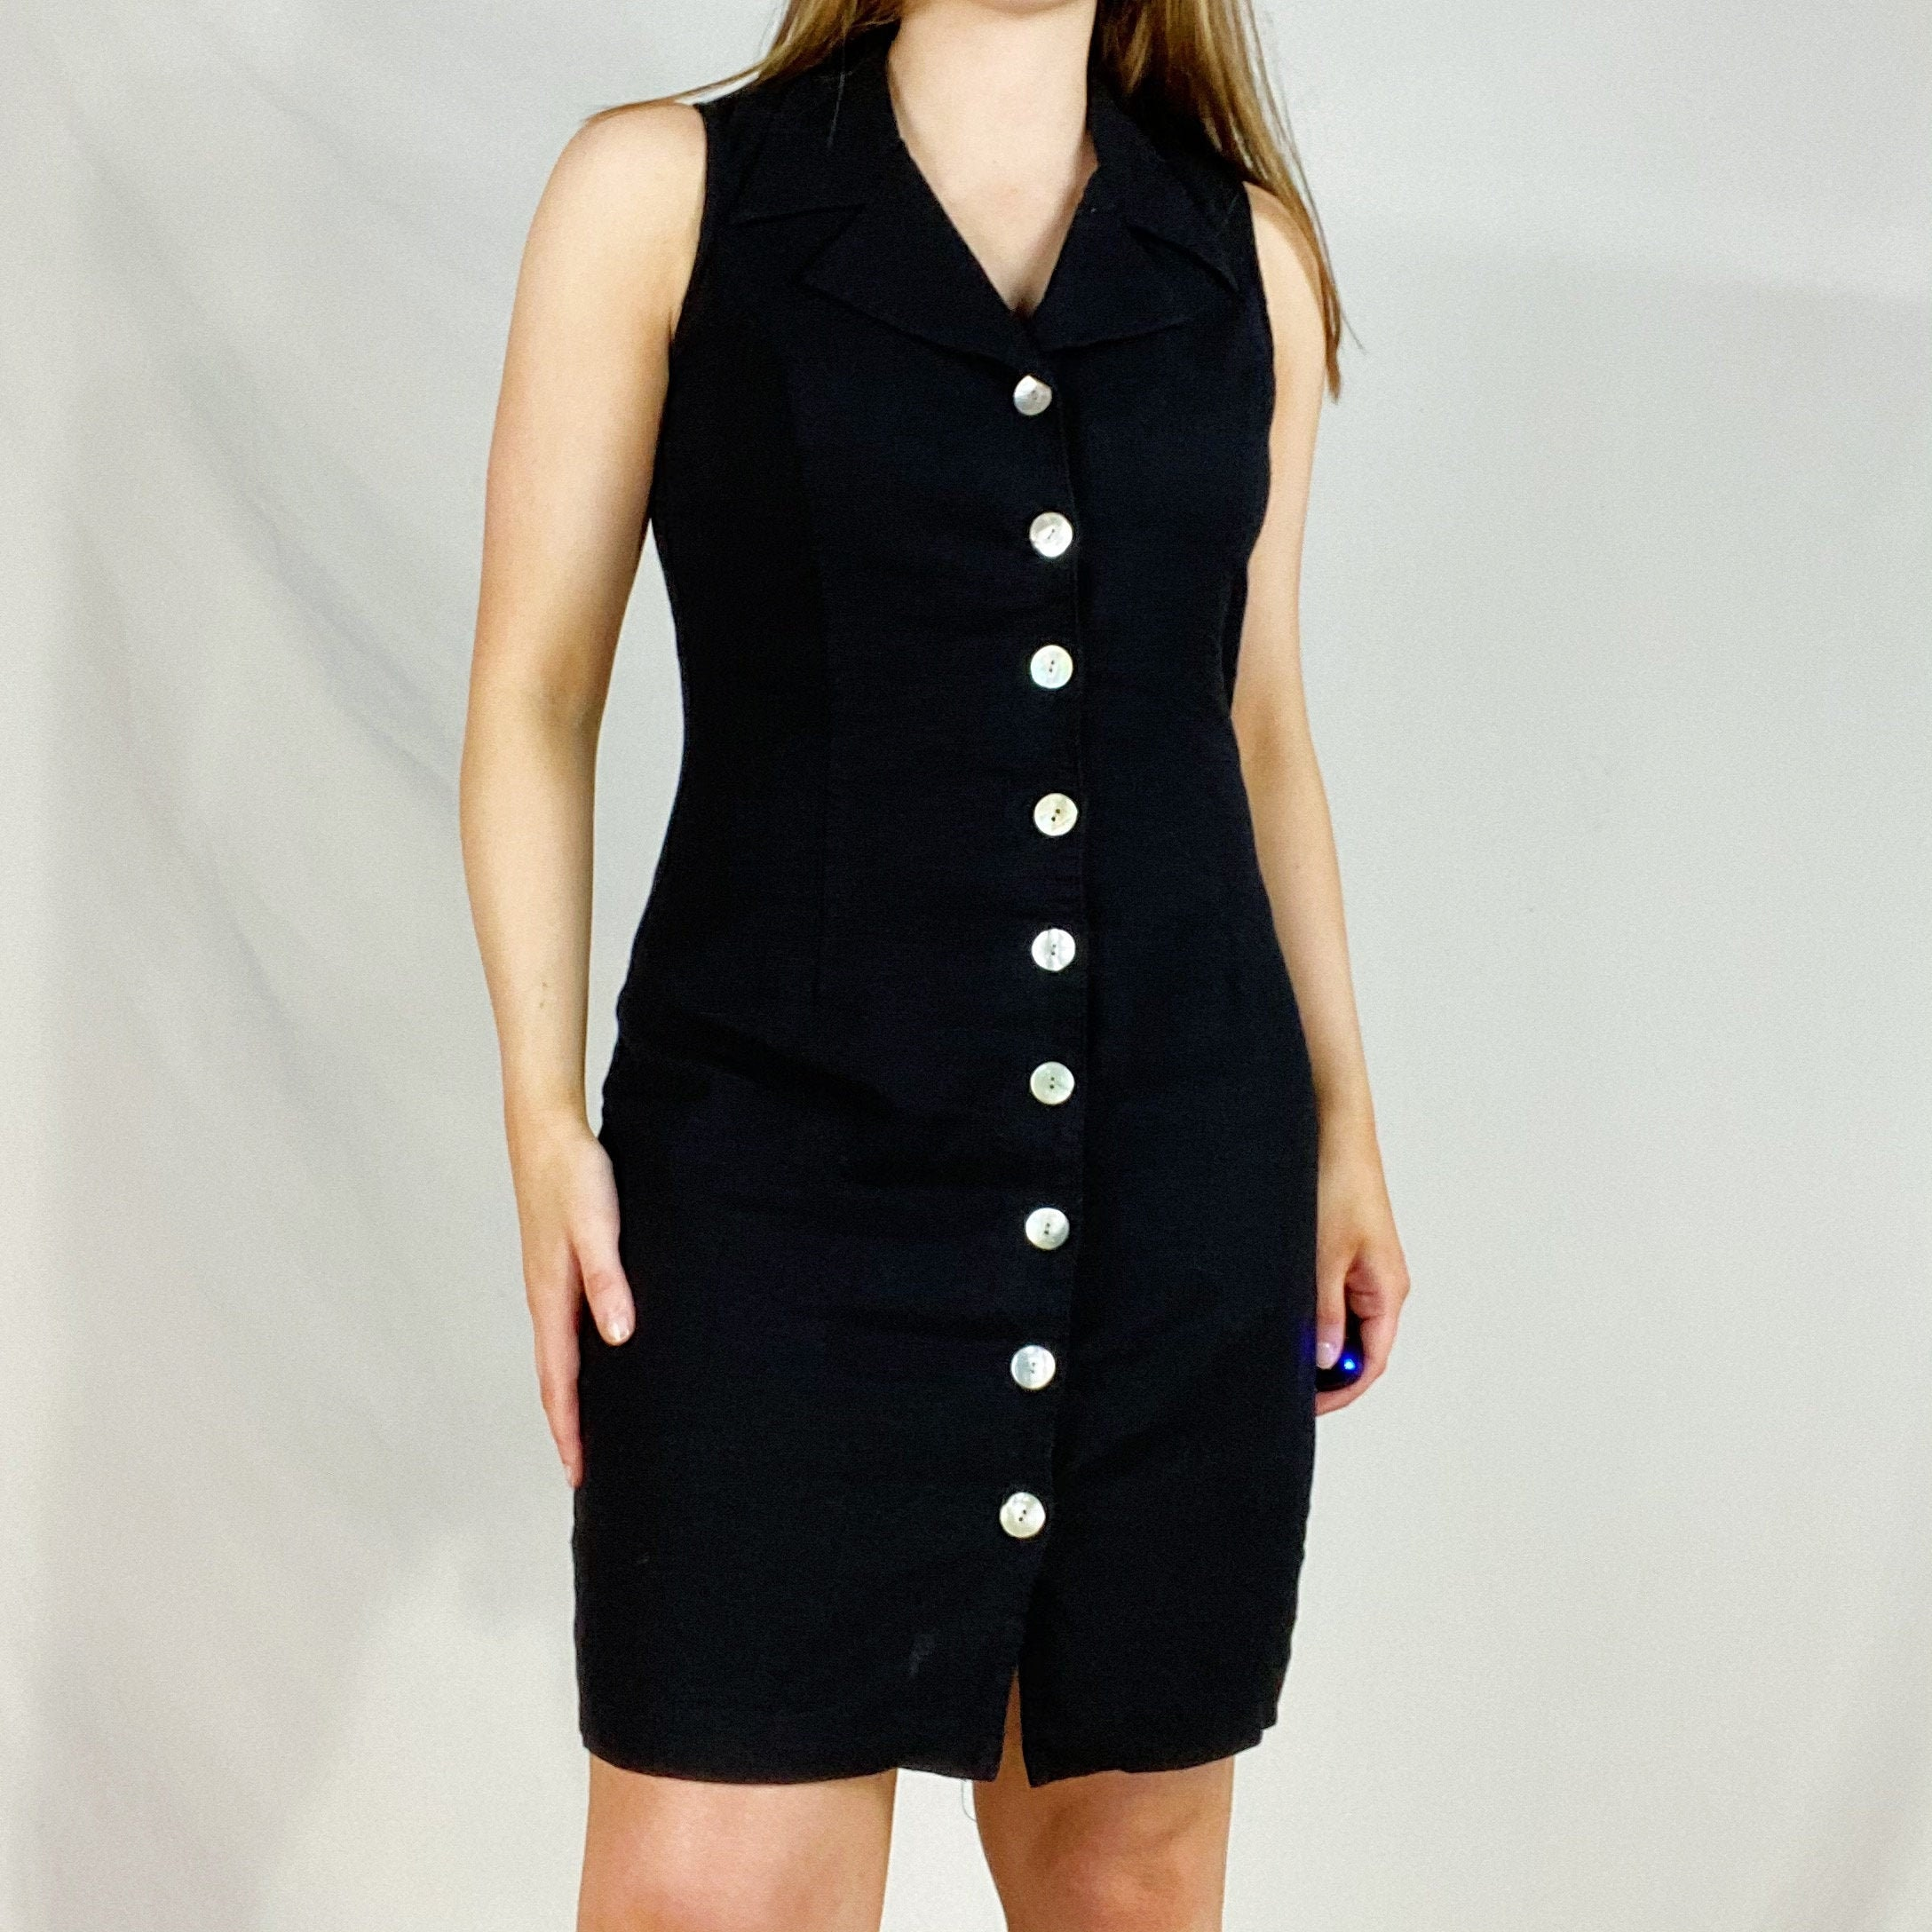 80s Dresses | Casual to Party Dresses 80S Carol Anderson Collection Black Button Front Collared Linen Mini Dress Minimalist Neutral Monochrome Knee Length Womens Vintage 90S $6.00 AT vintagedancer.com